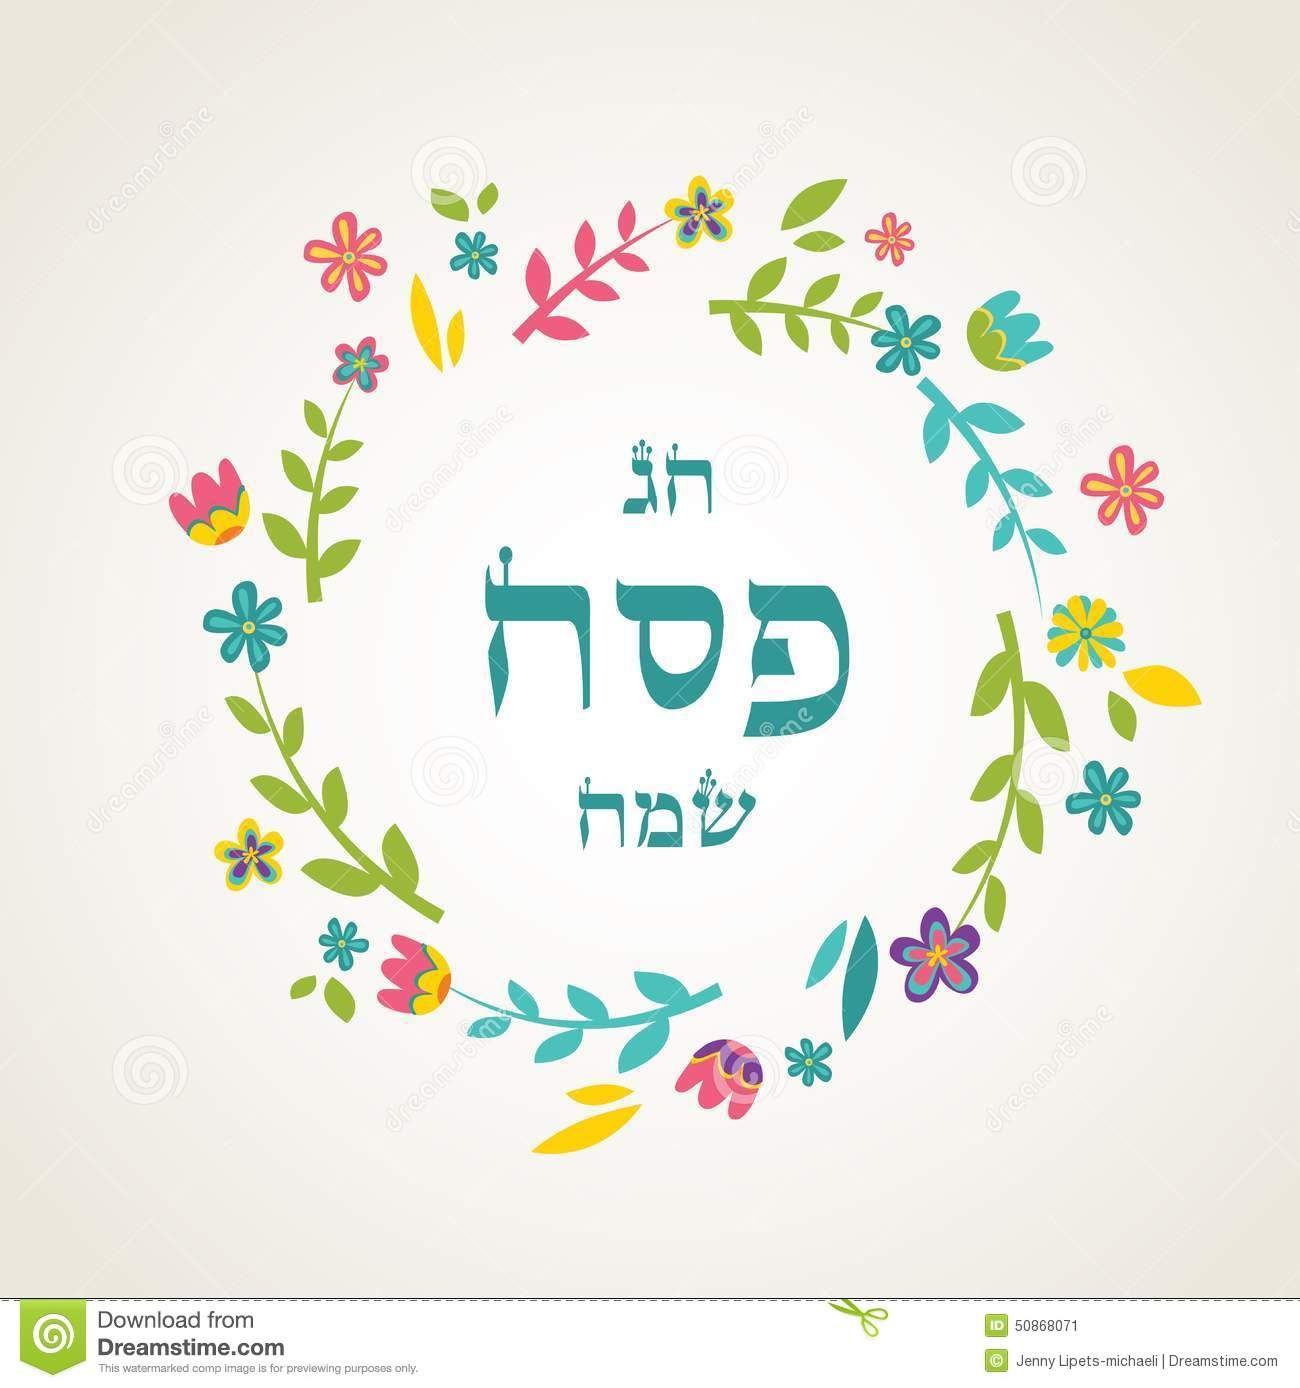 Free Passover Clipart Memes Banners Gif Borders Passover.